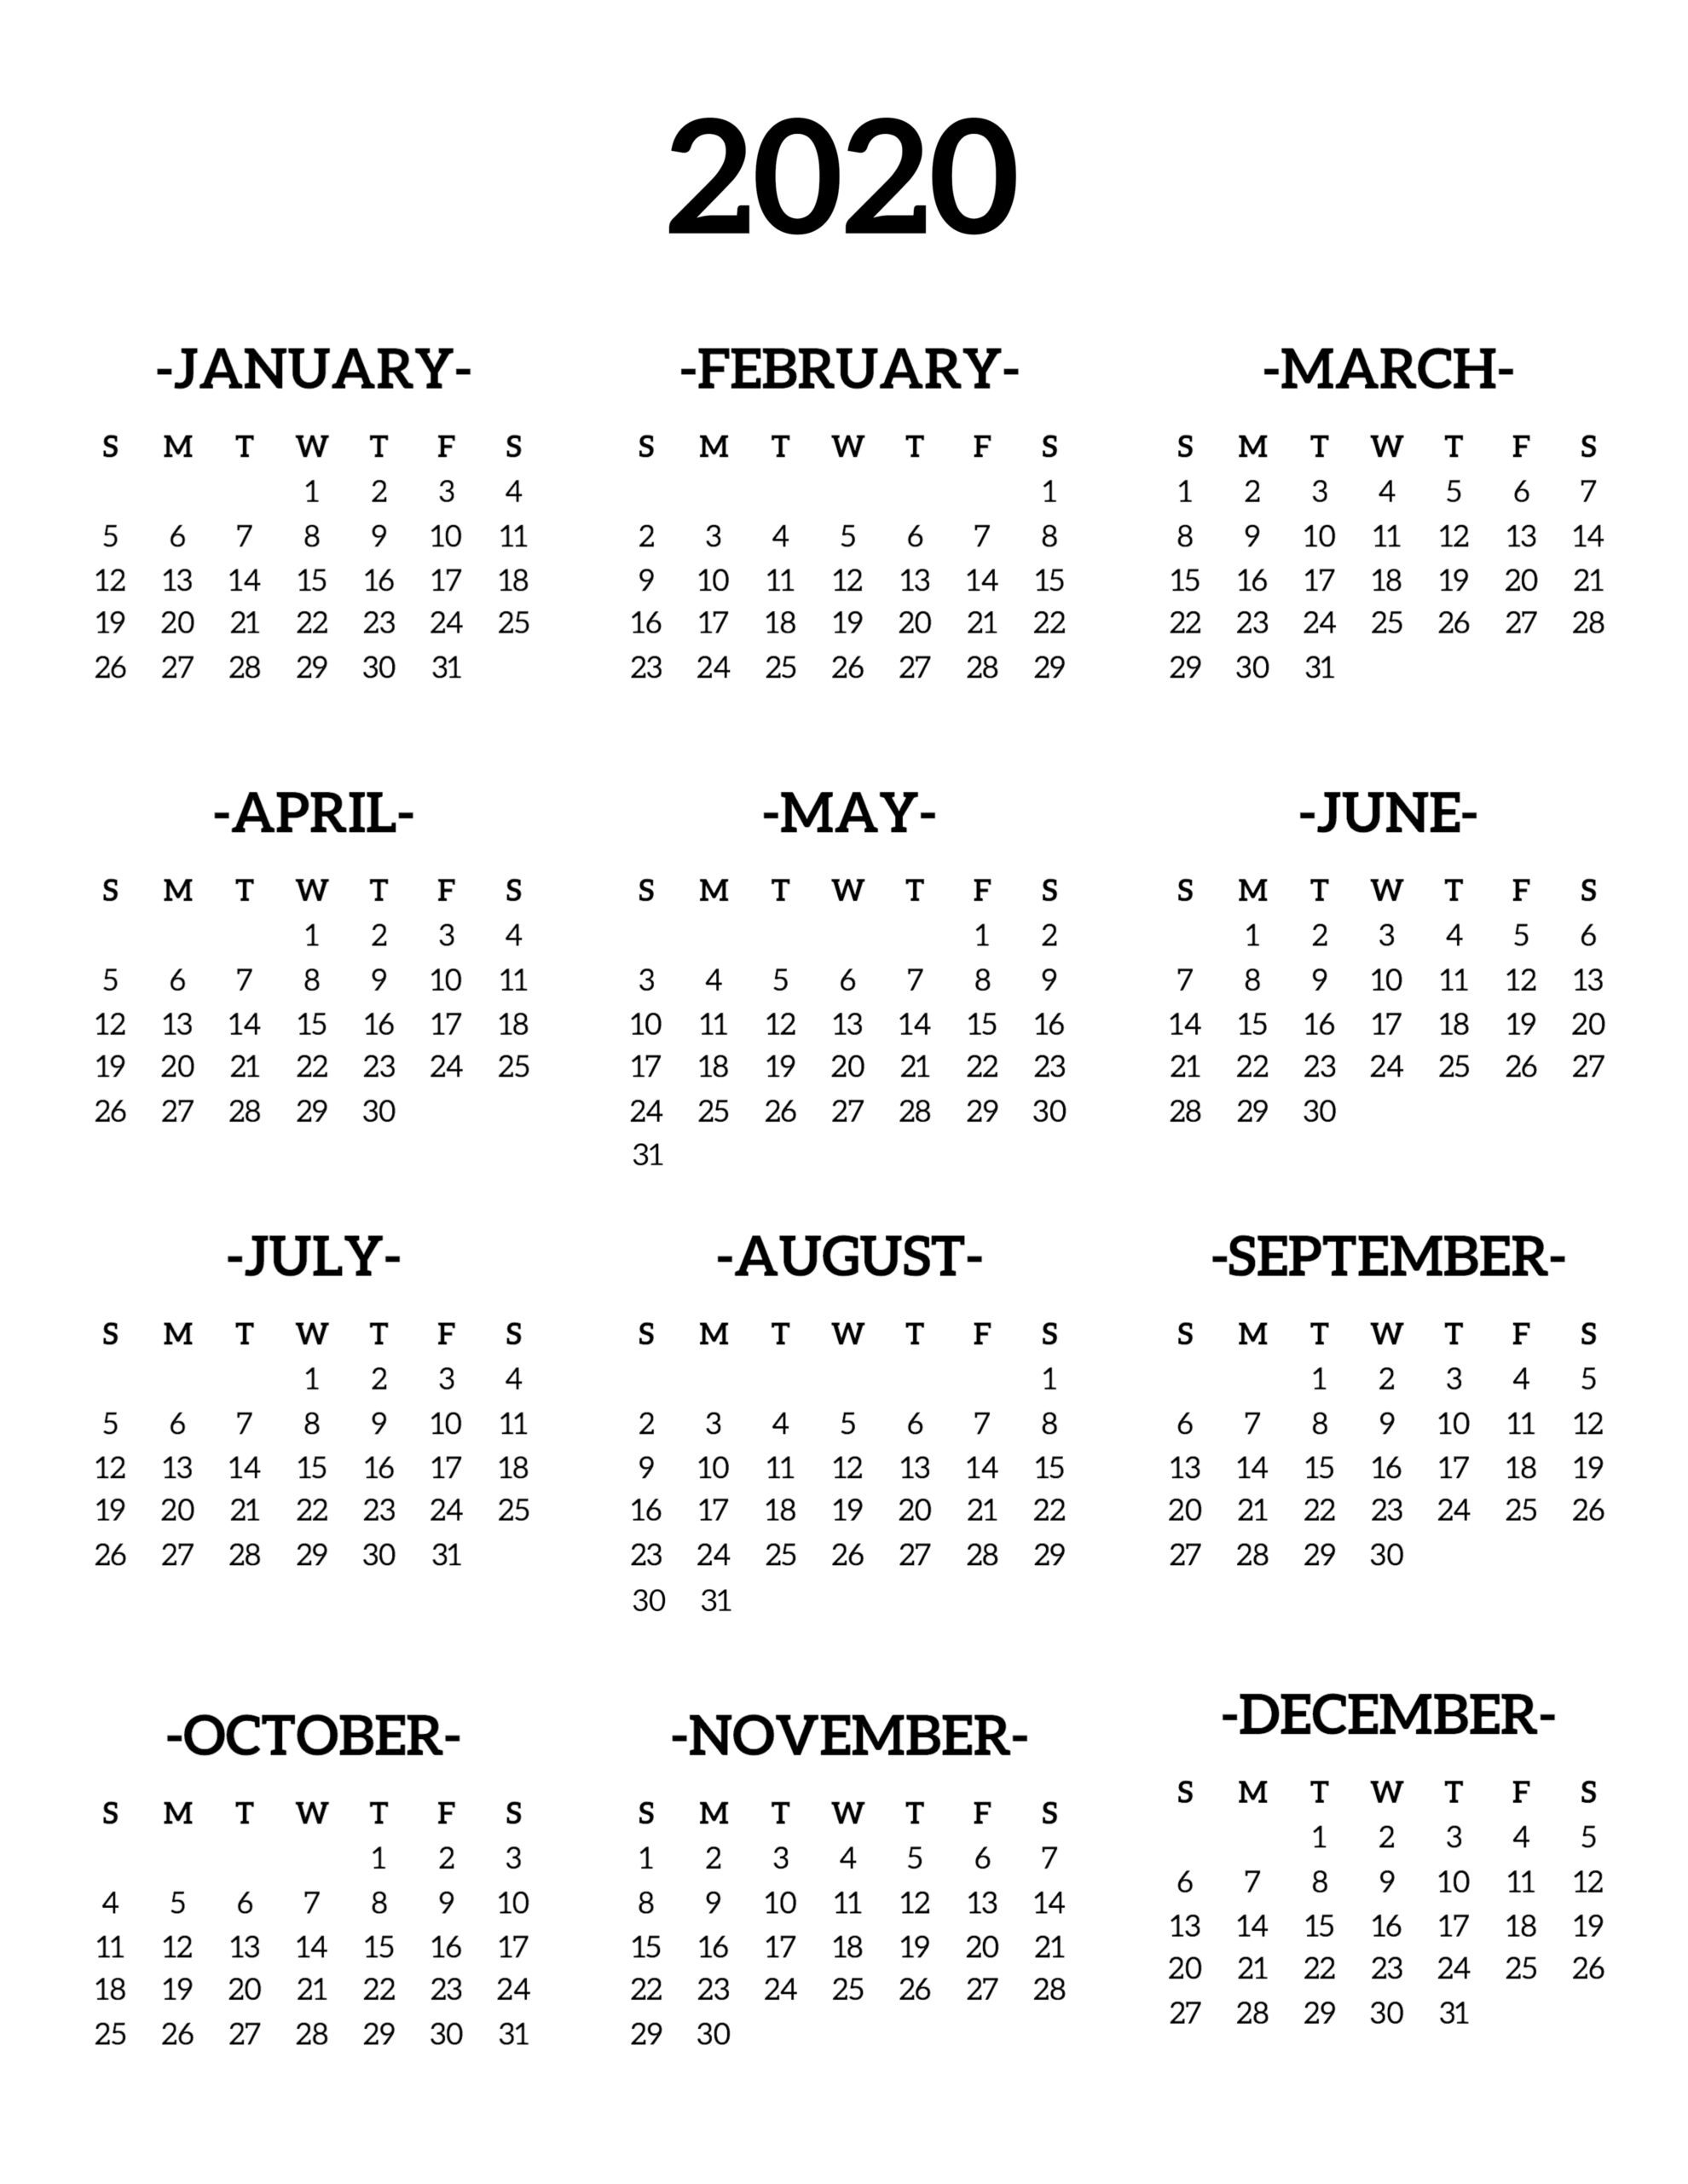 Calendar 2020 Printable One Page - Paper Trail Design in 2020 Calendar Printable One Page